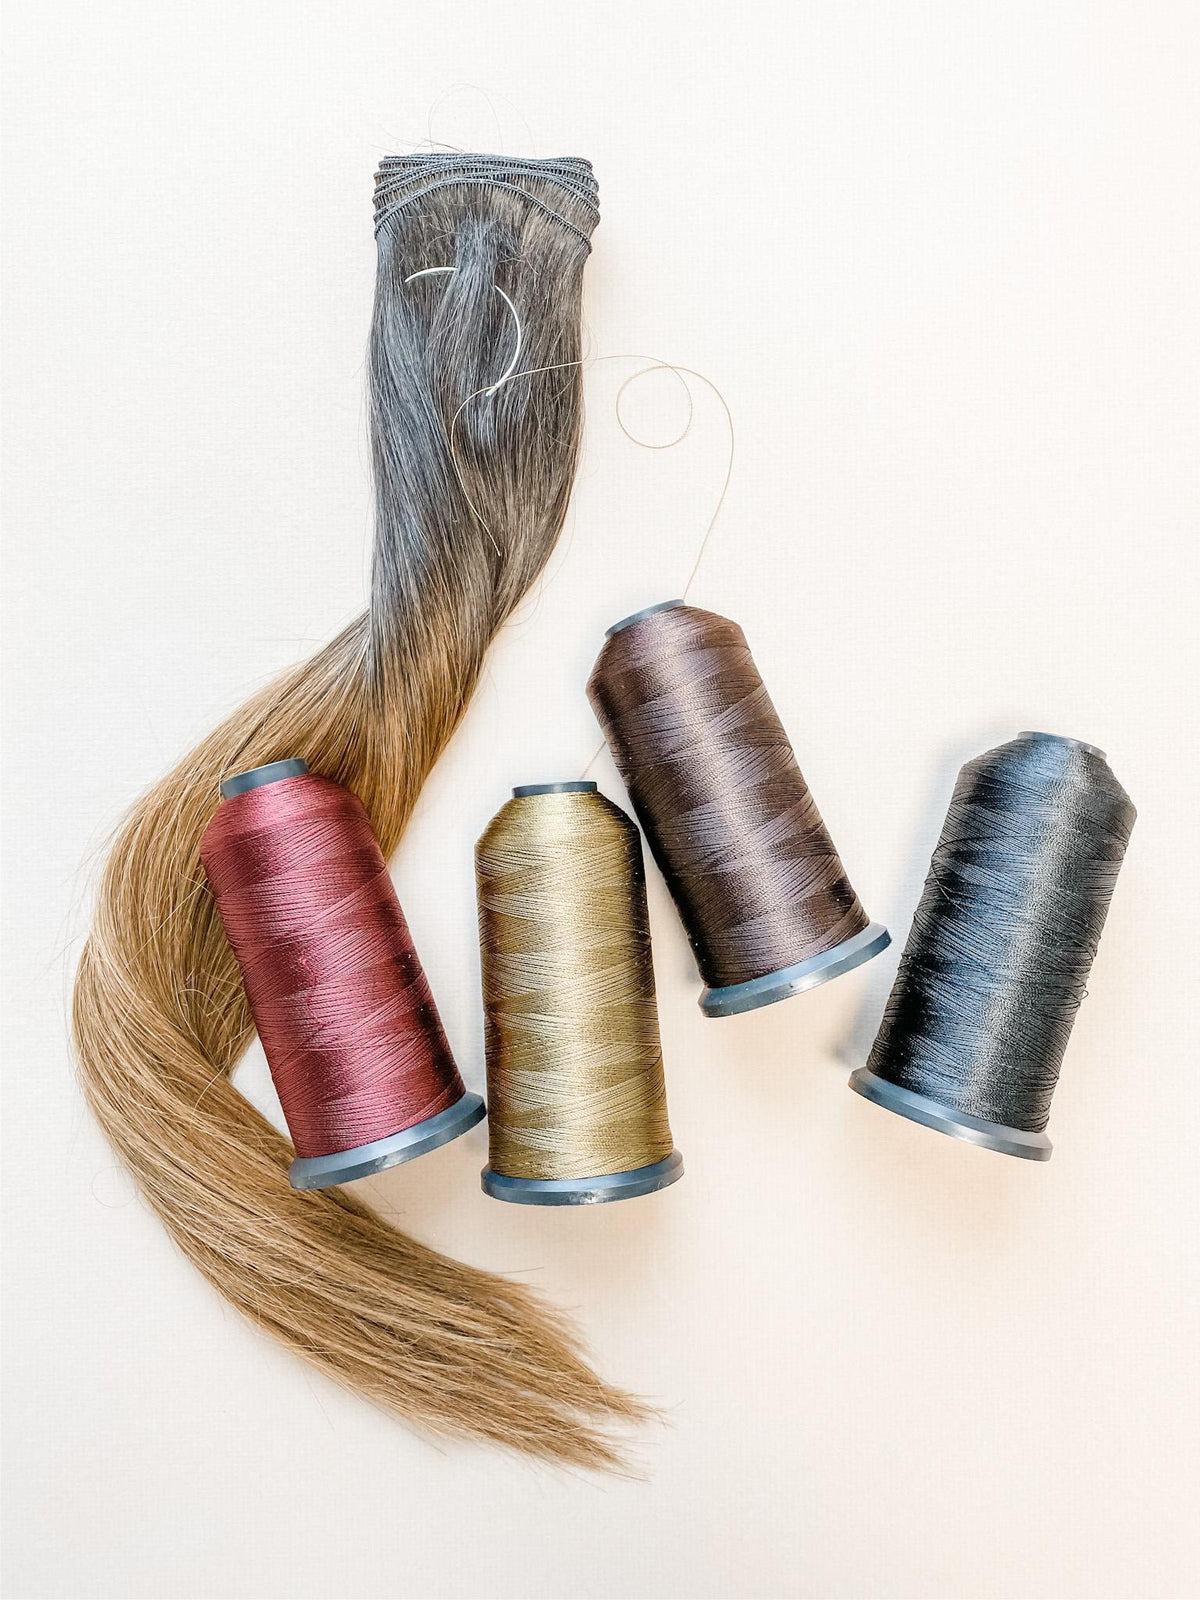 Tools - Laced Hair Thin Weaving Thread